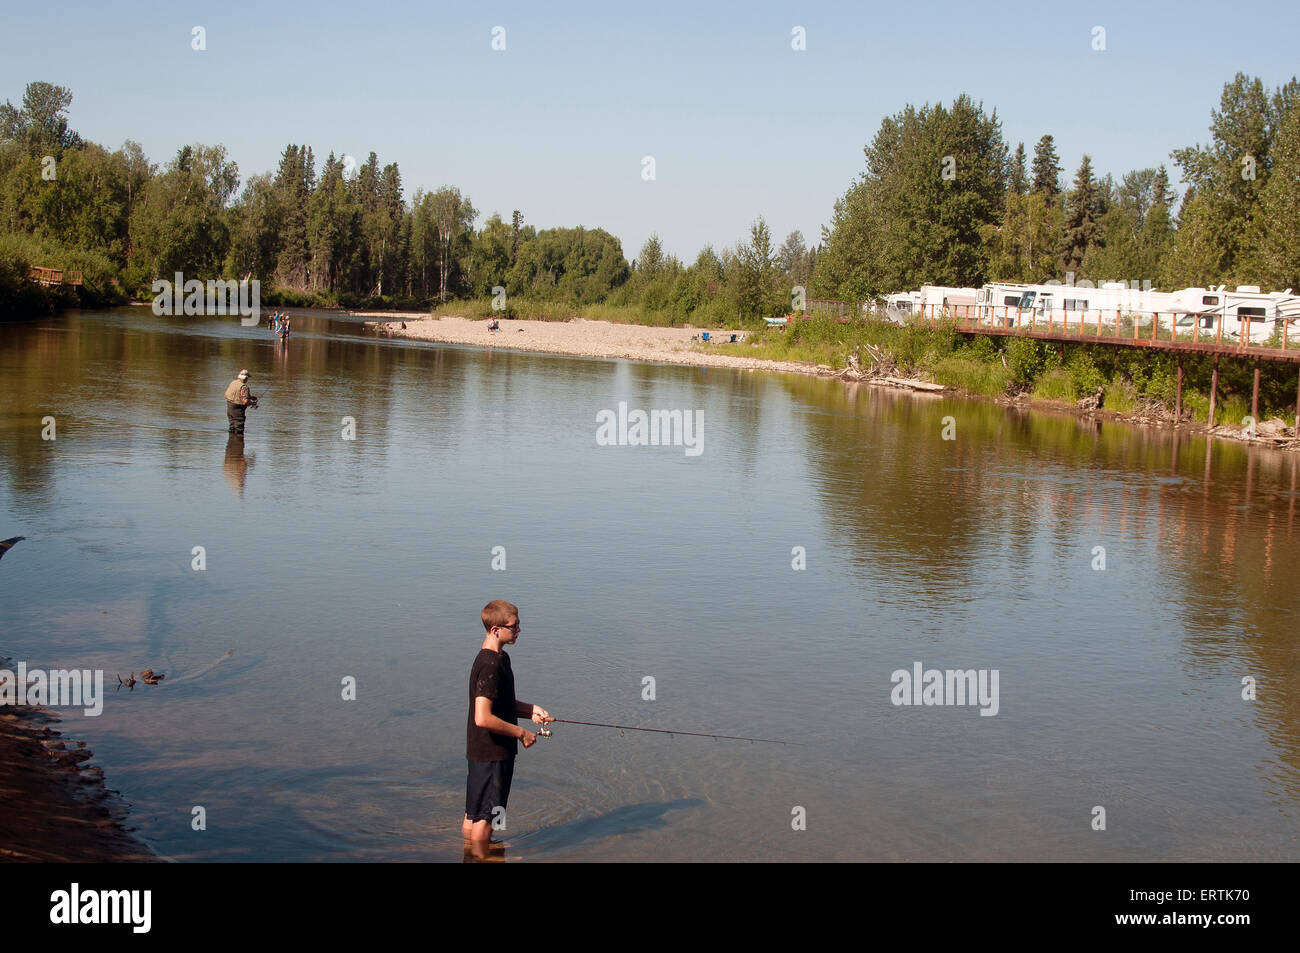 Fishing at willow creek campground in alaska stock photo for Willow creek fishing